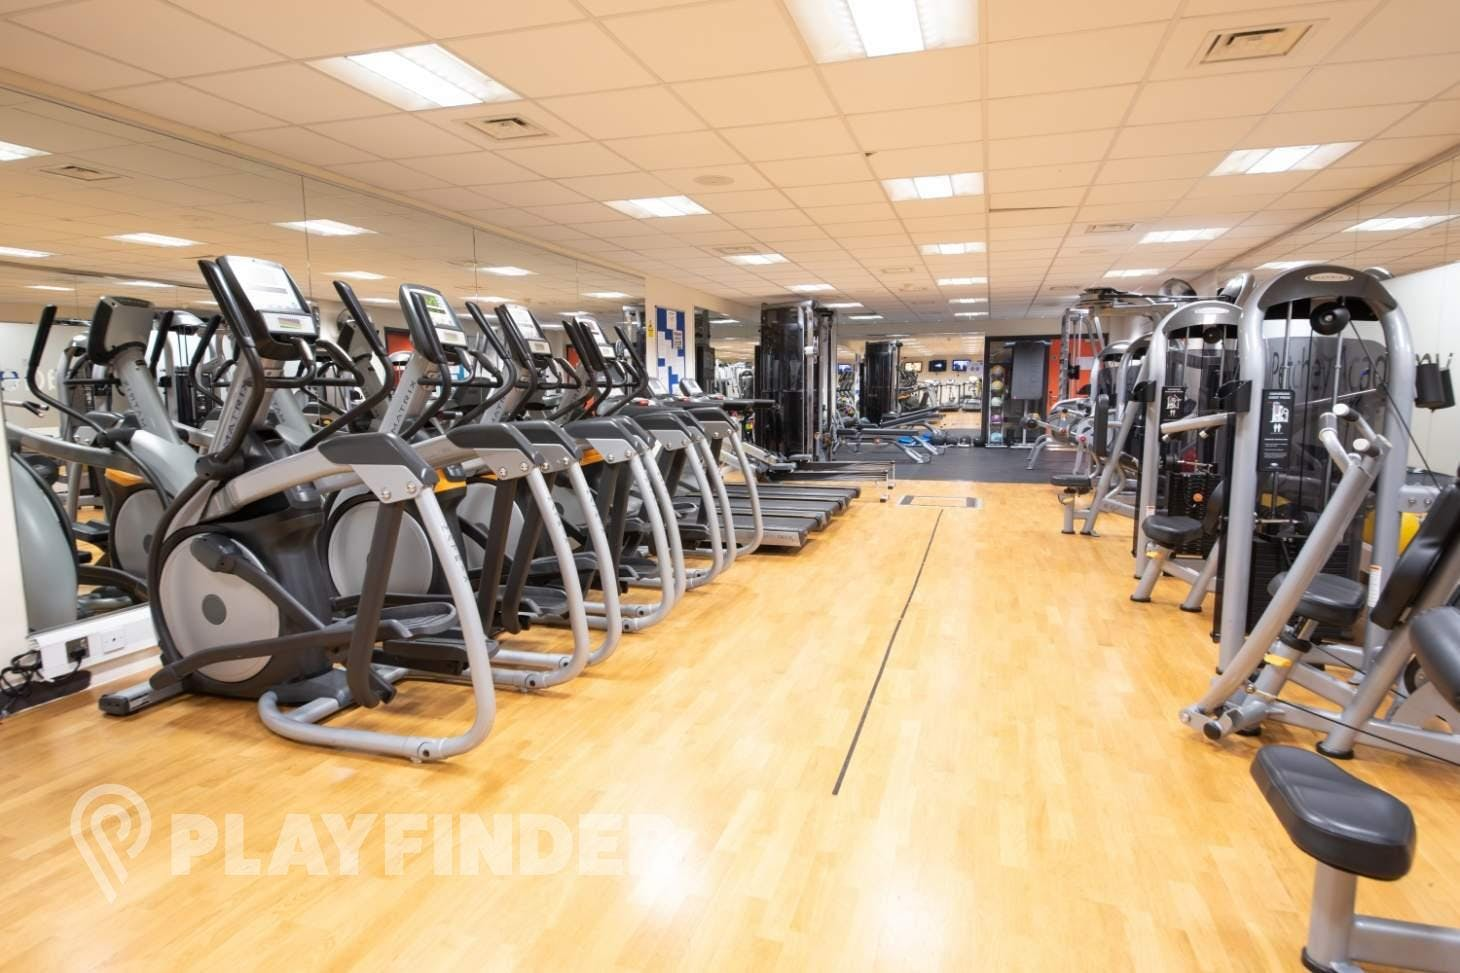 The Petchey Academy Sports Club Gym space hire